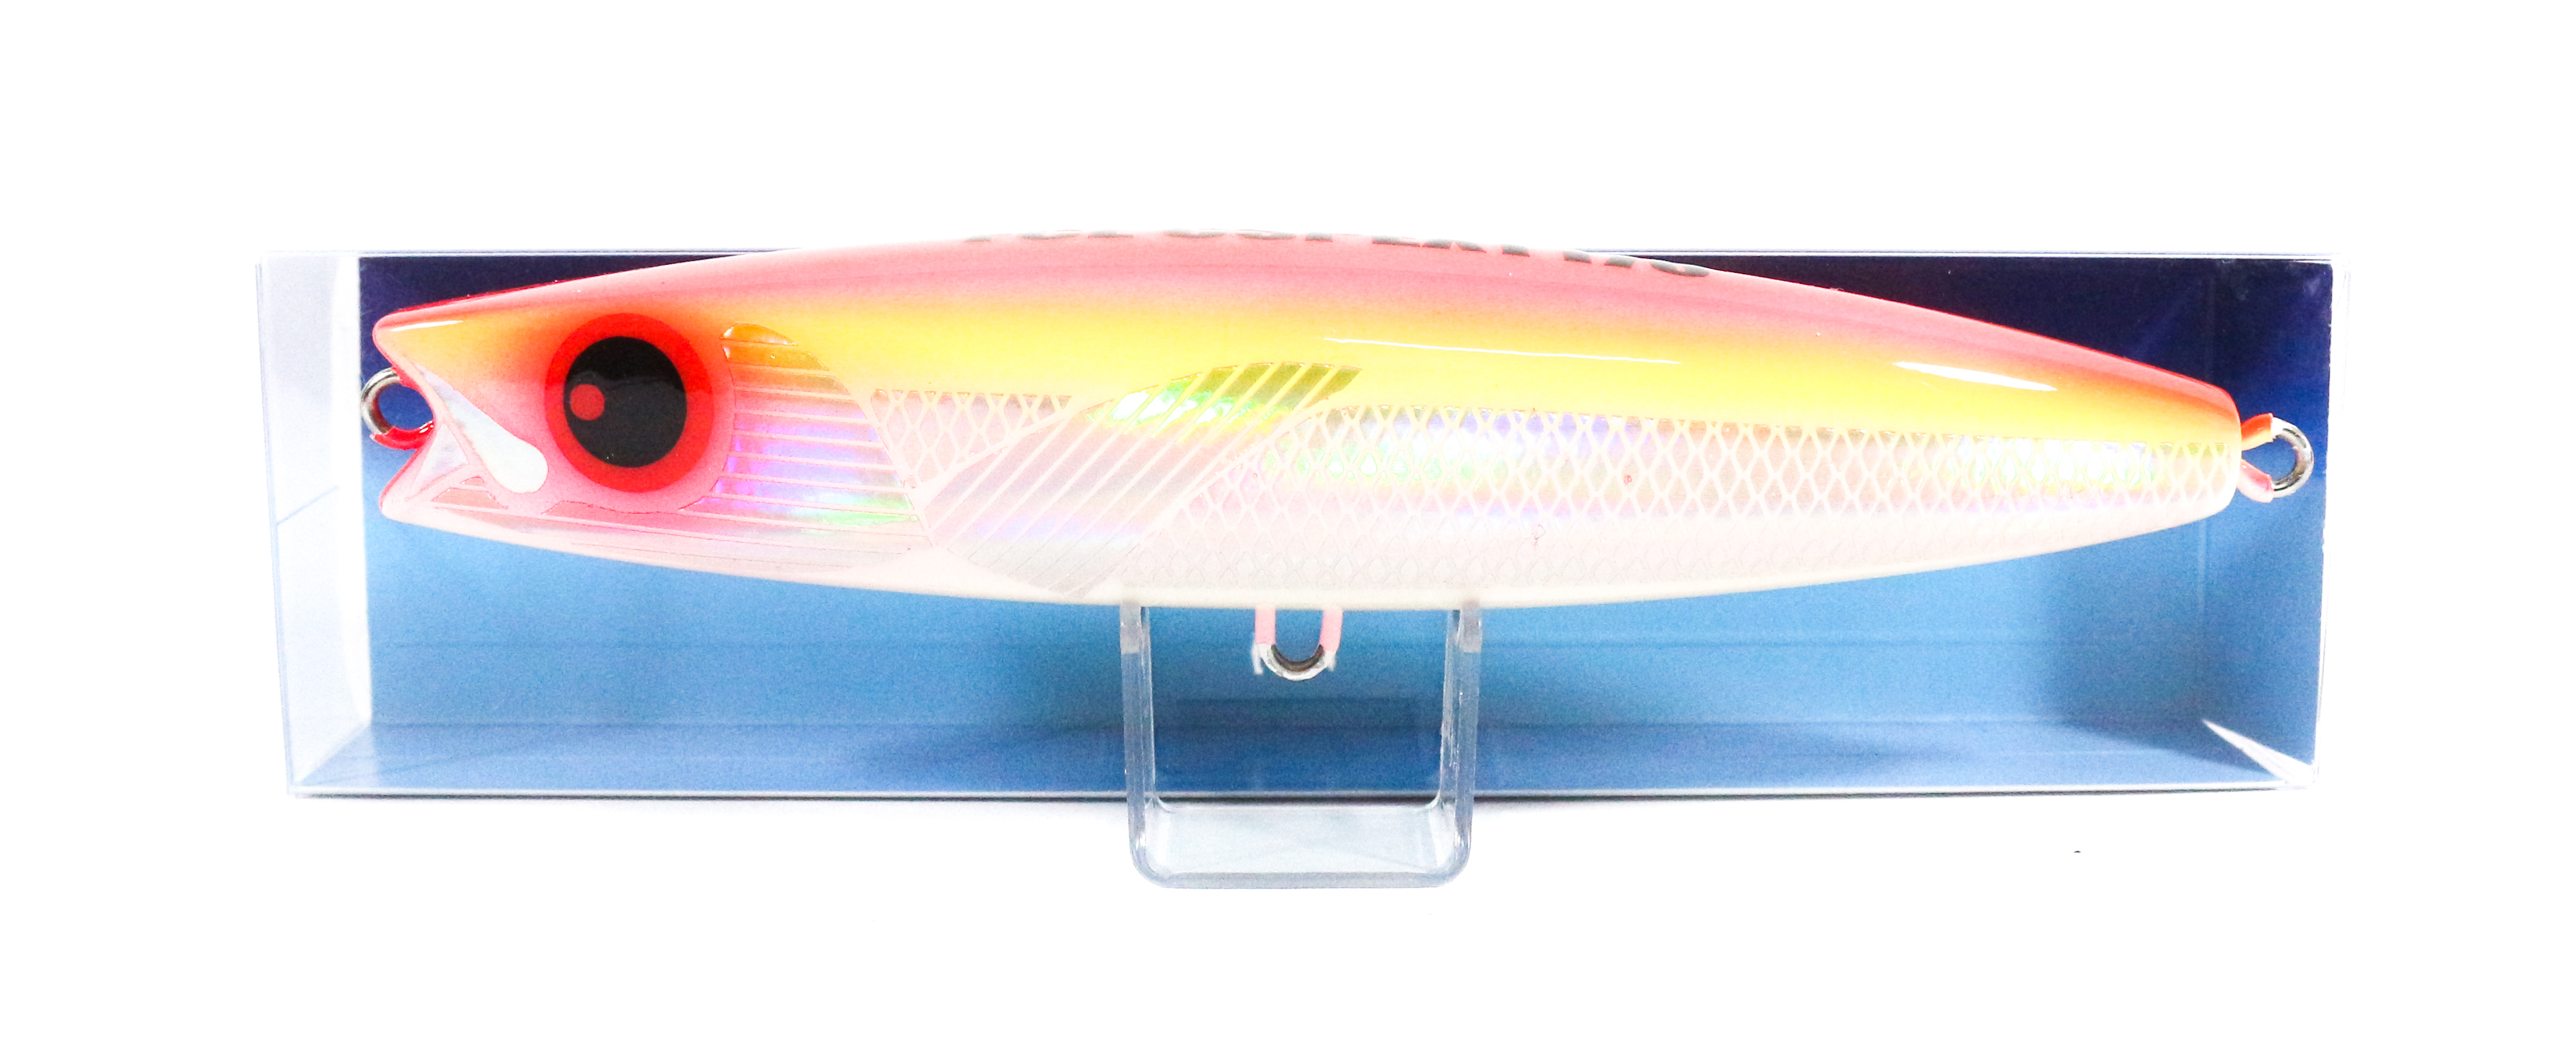 FCL Labo Stick Bait CSP EXT 170 Floating Lure UYLP (8670)